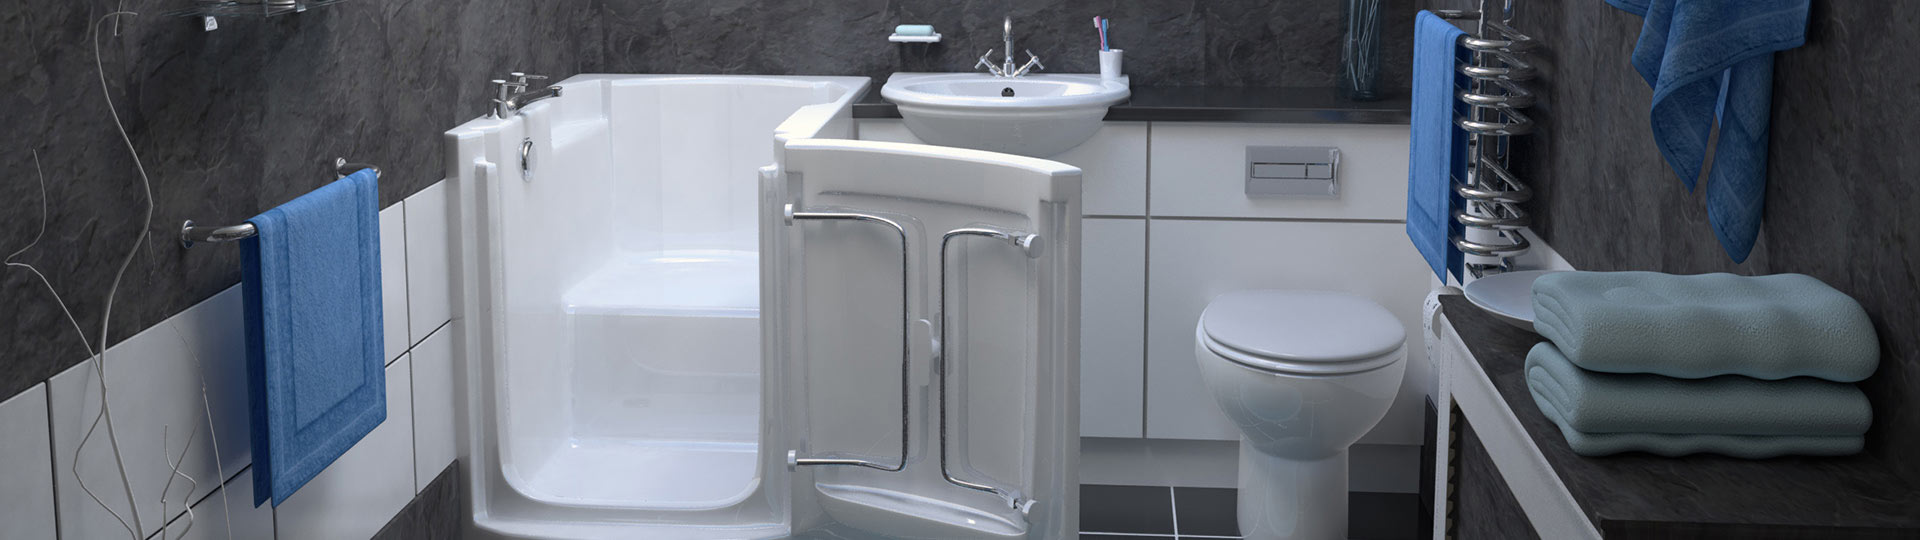 bathroom 3d render